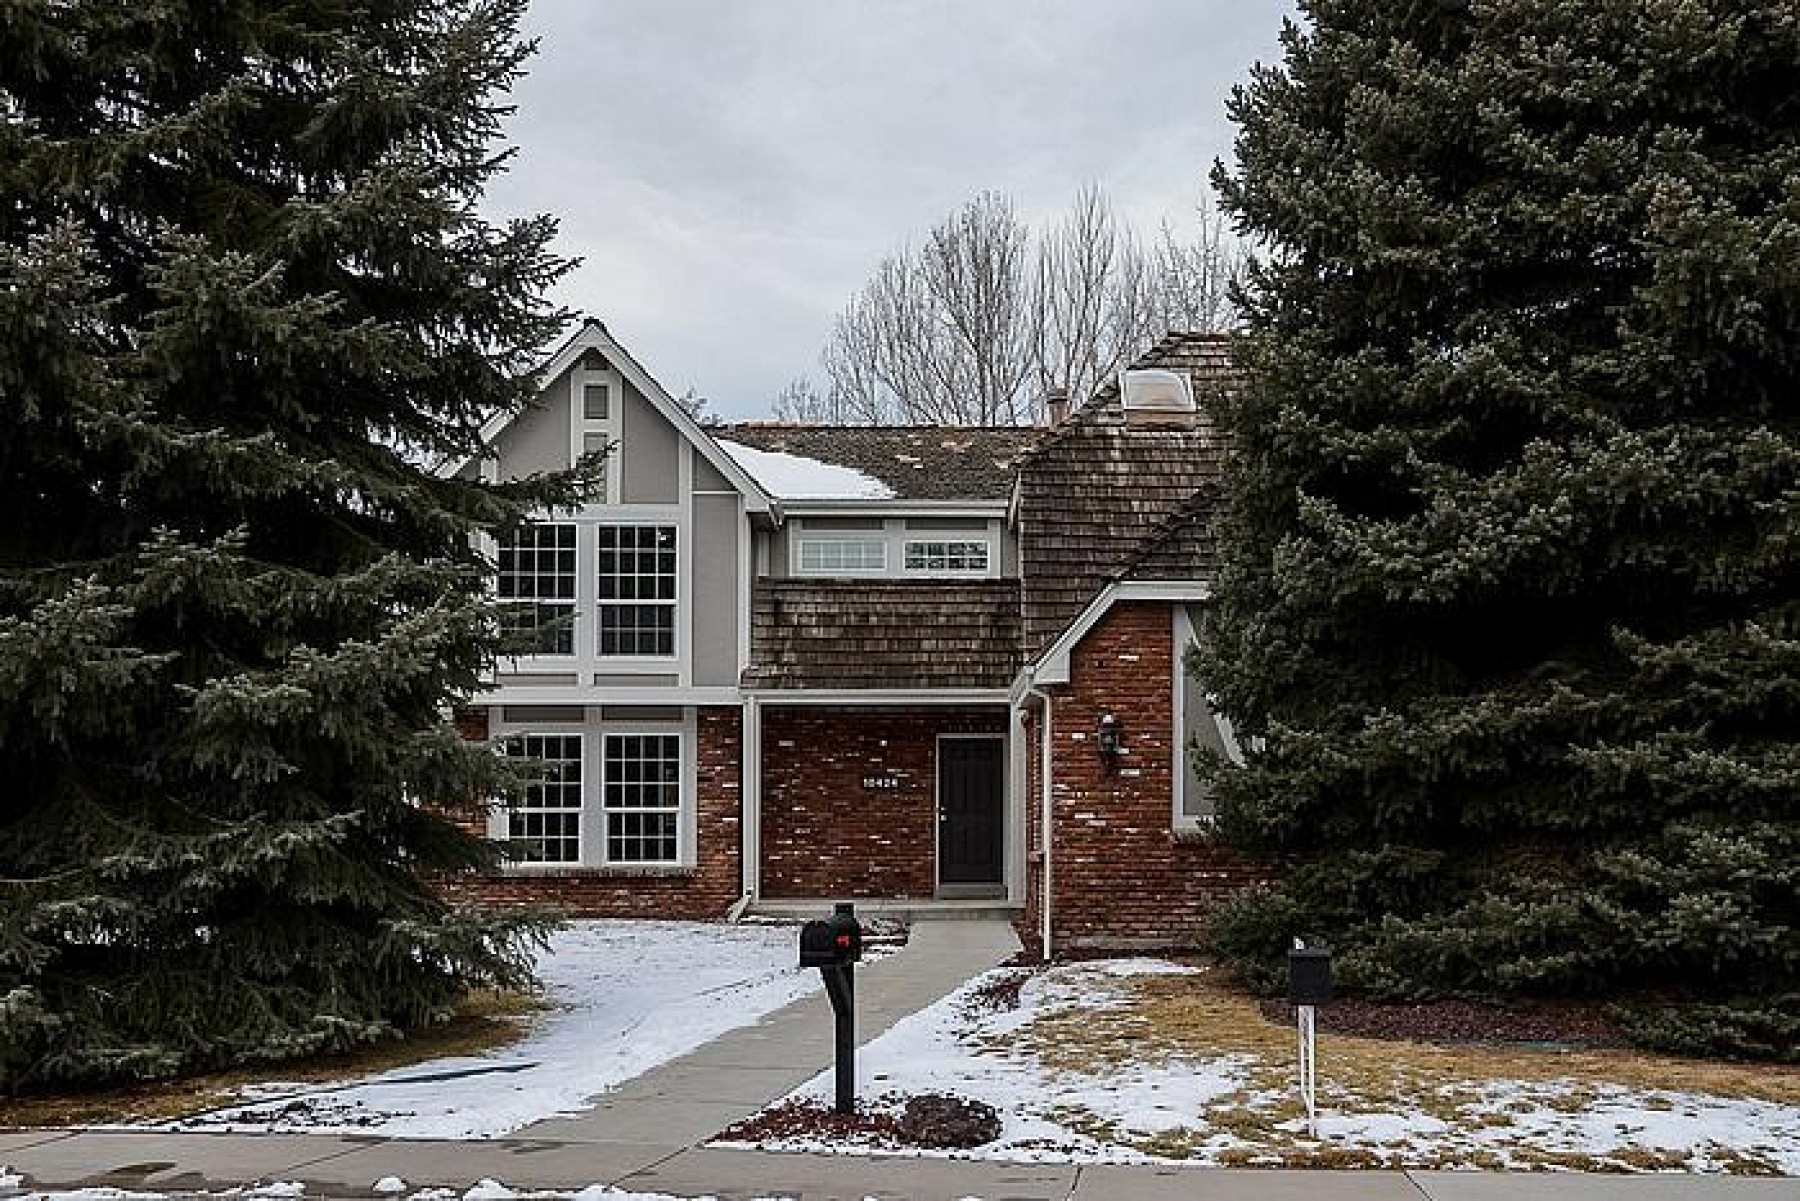 10424 E. Berry Drive, Greenwood Village, CO 80112